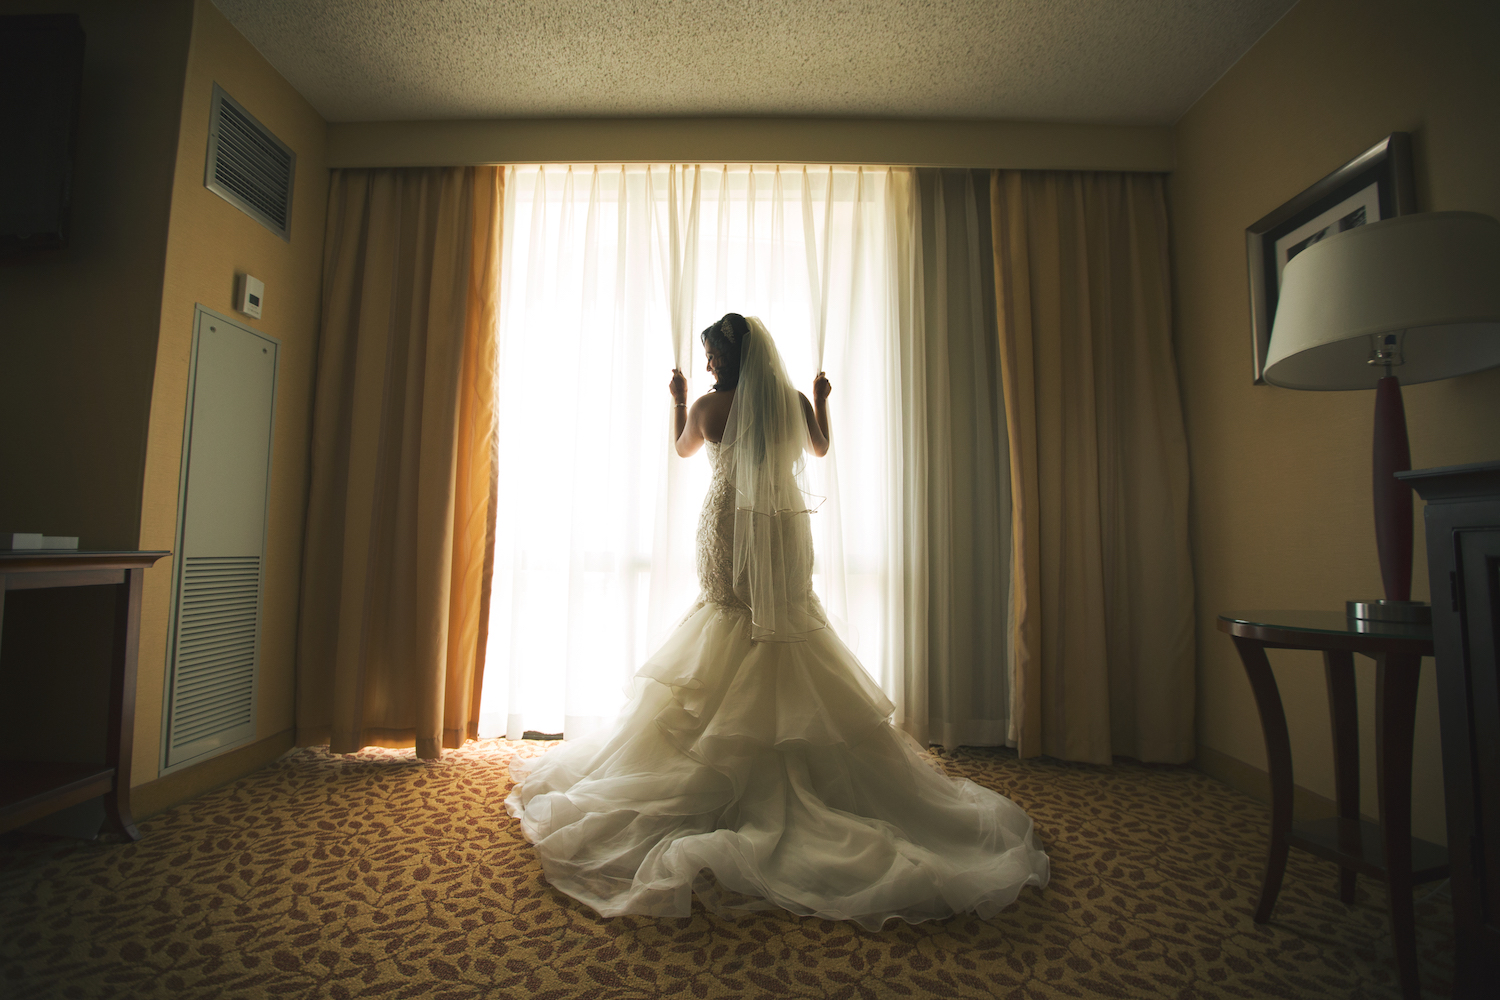 sherry-at-window-in-dress-wedding-photography-nj